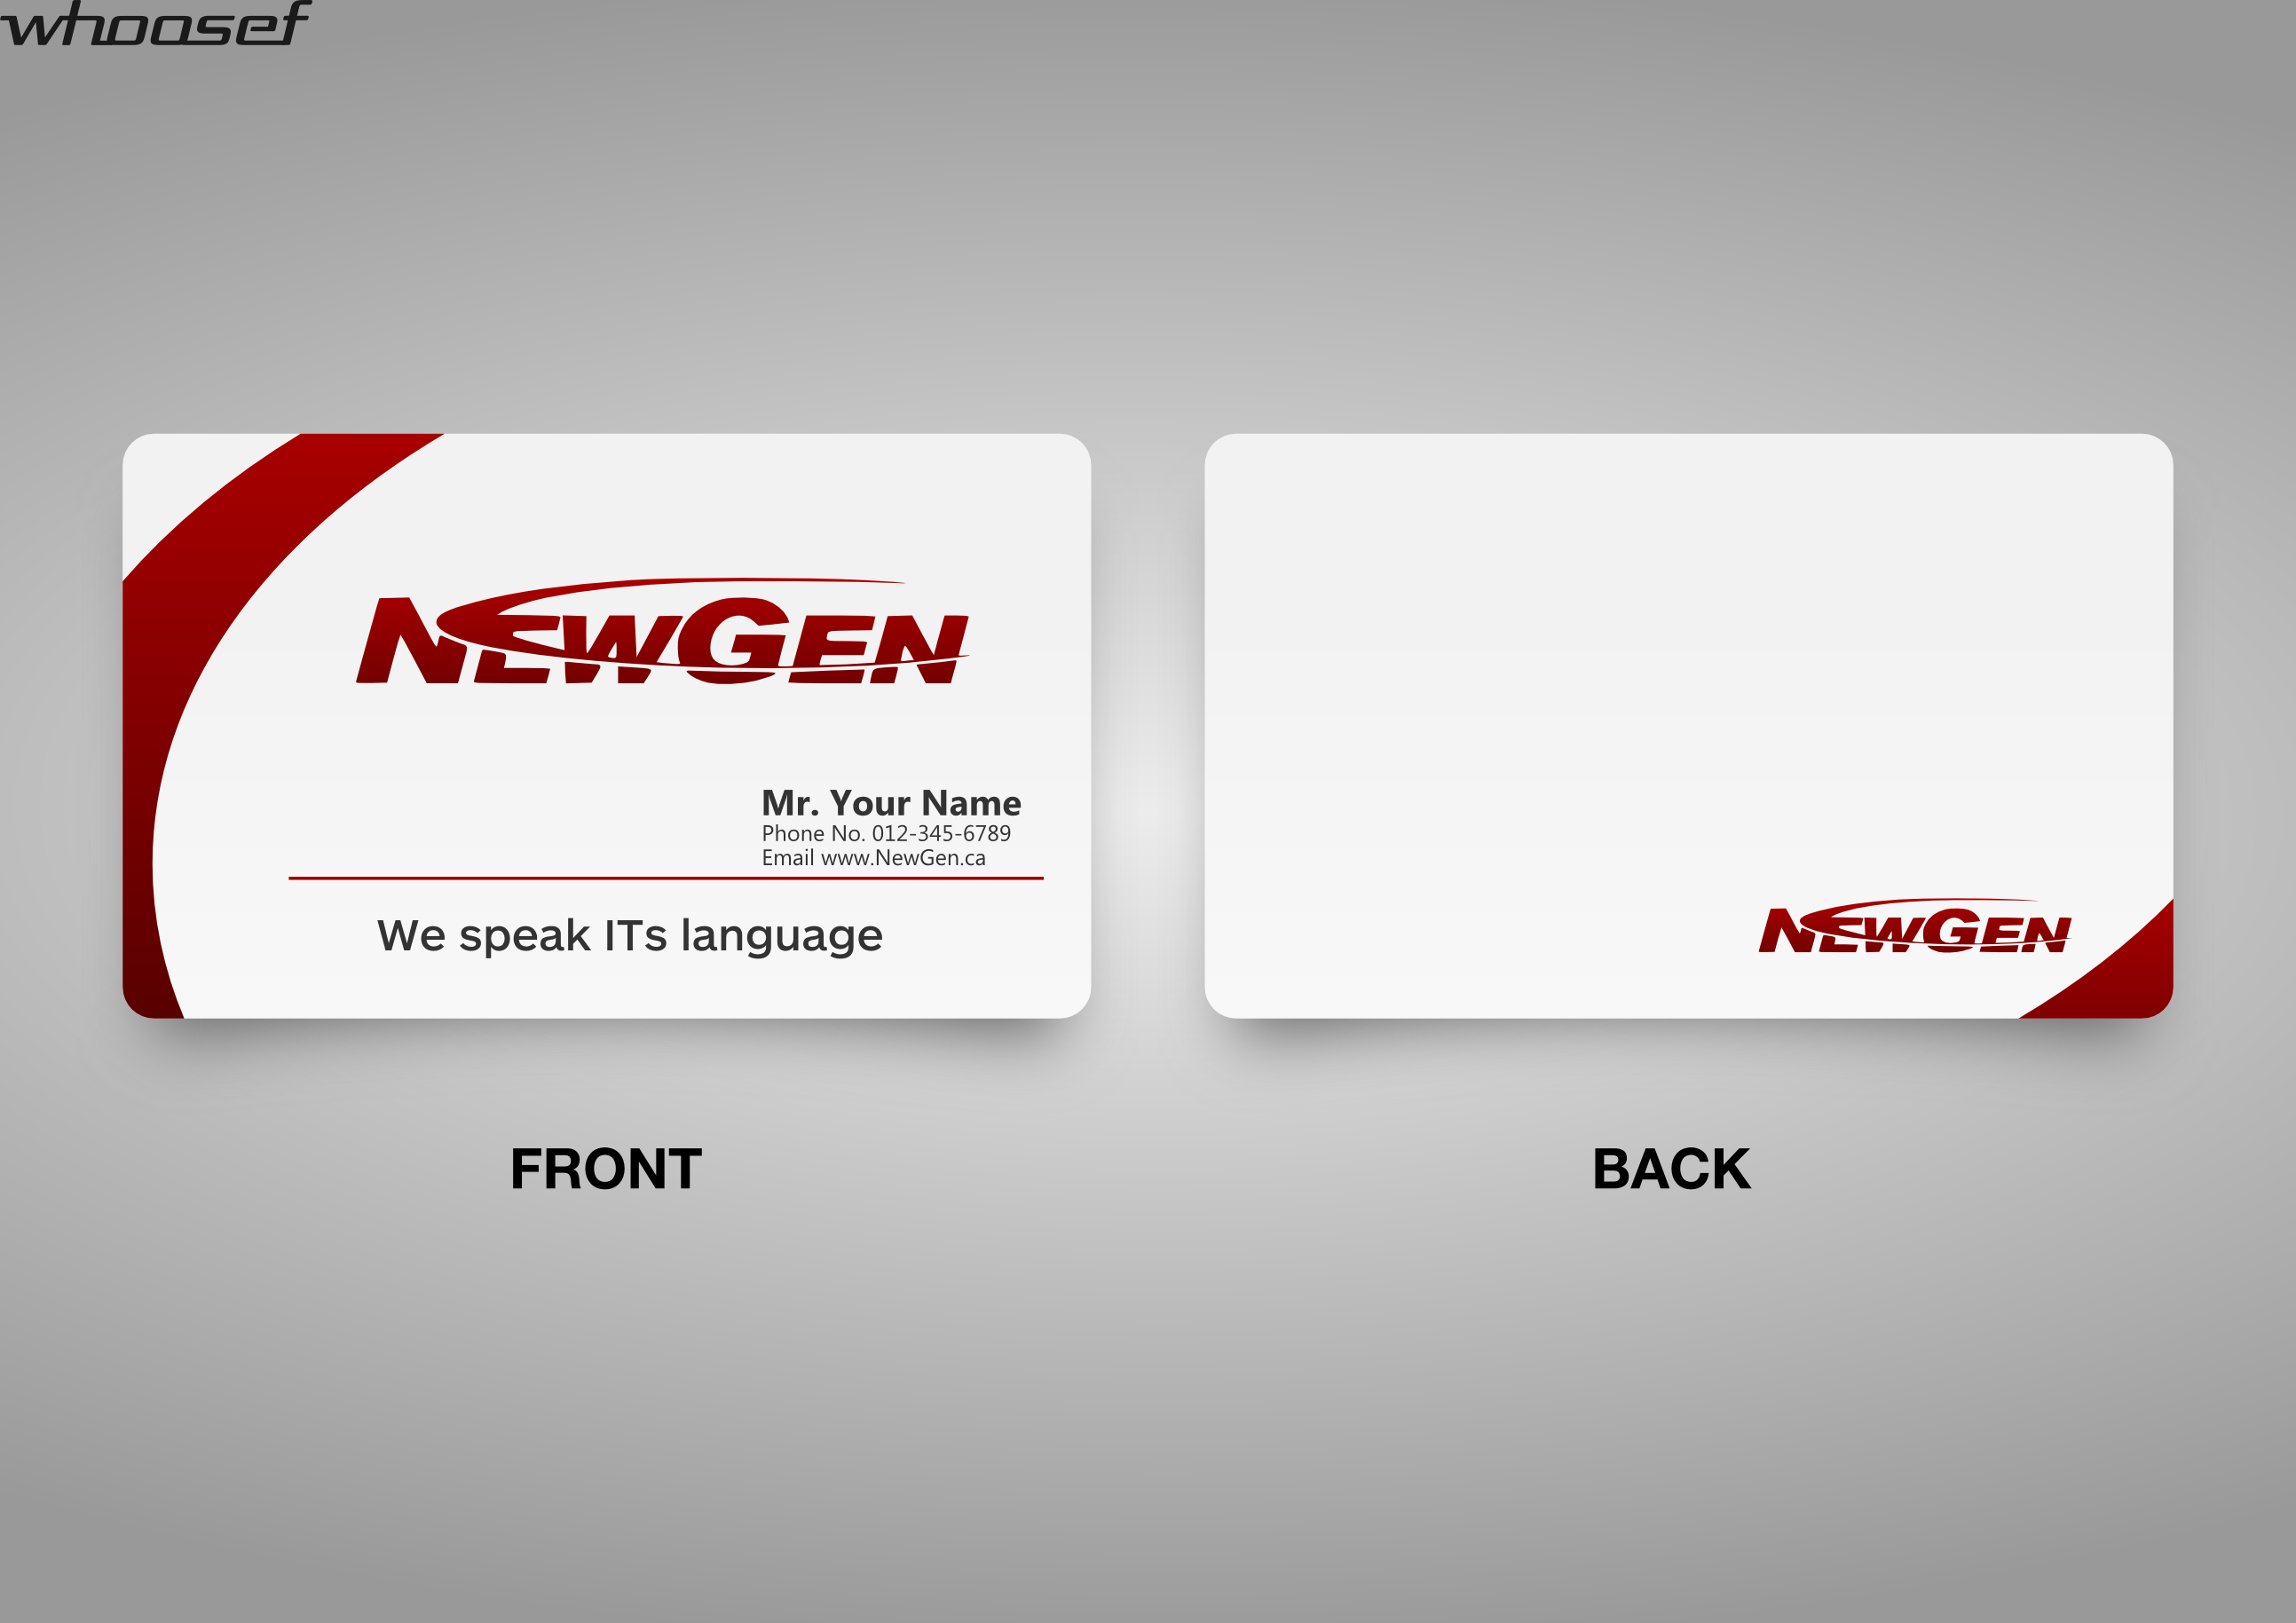 Business Card Design by whoosef - Entry No. 101 in the Business Card Design Contest Inspiring Business Card Design for NewGen Technologies.